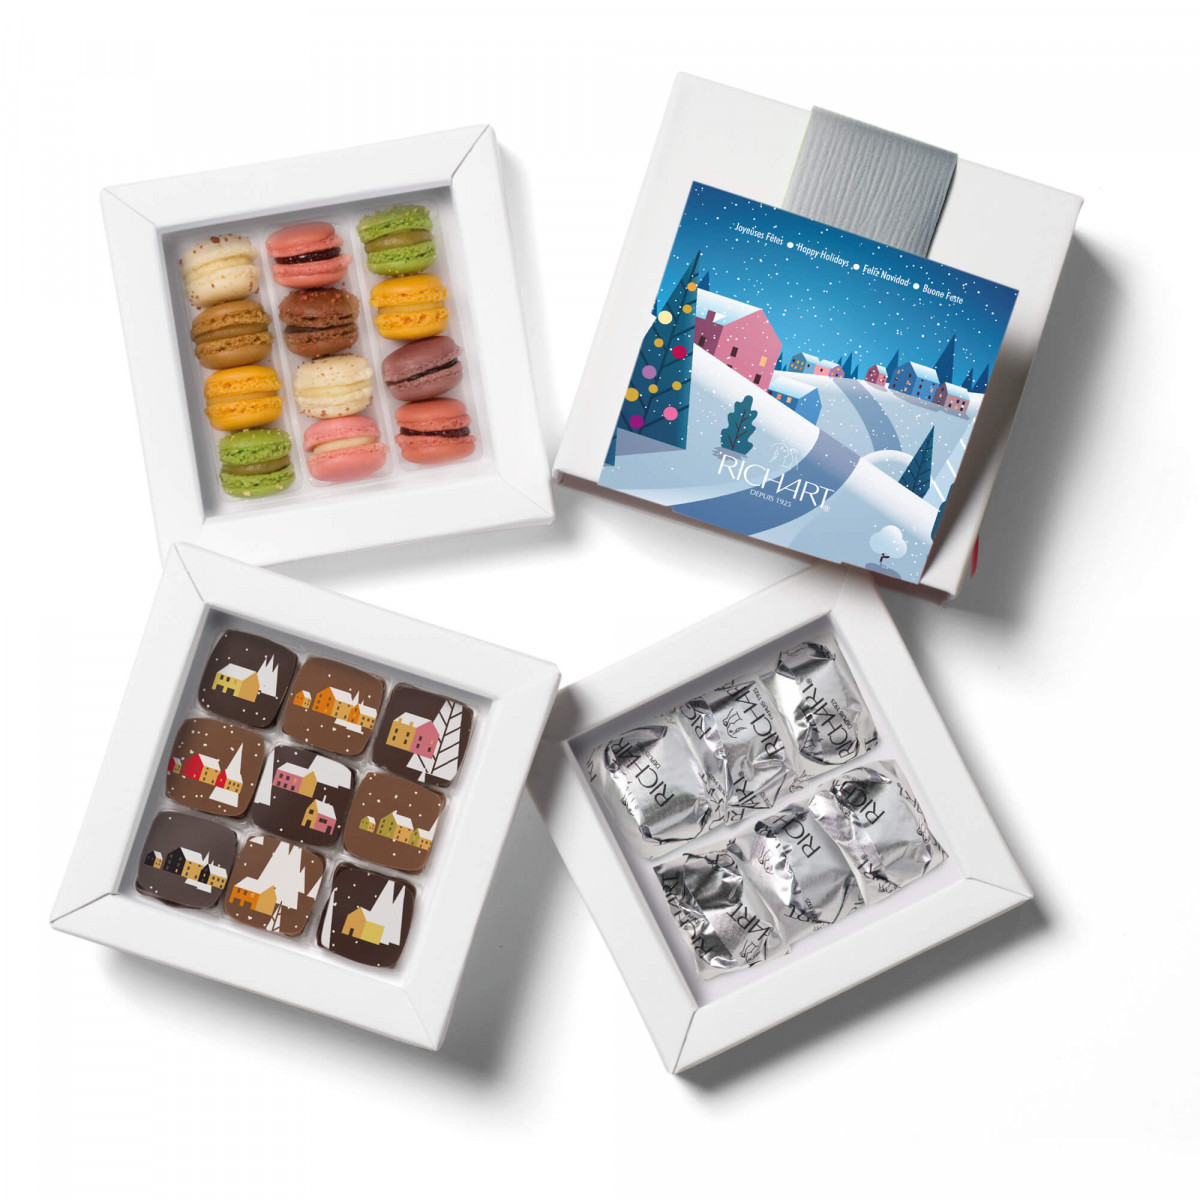 Iconic Winter - Gift box of 9 filled chocolates, 12 French mini-macarons and 6 glazed chestnuts